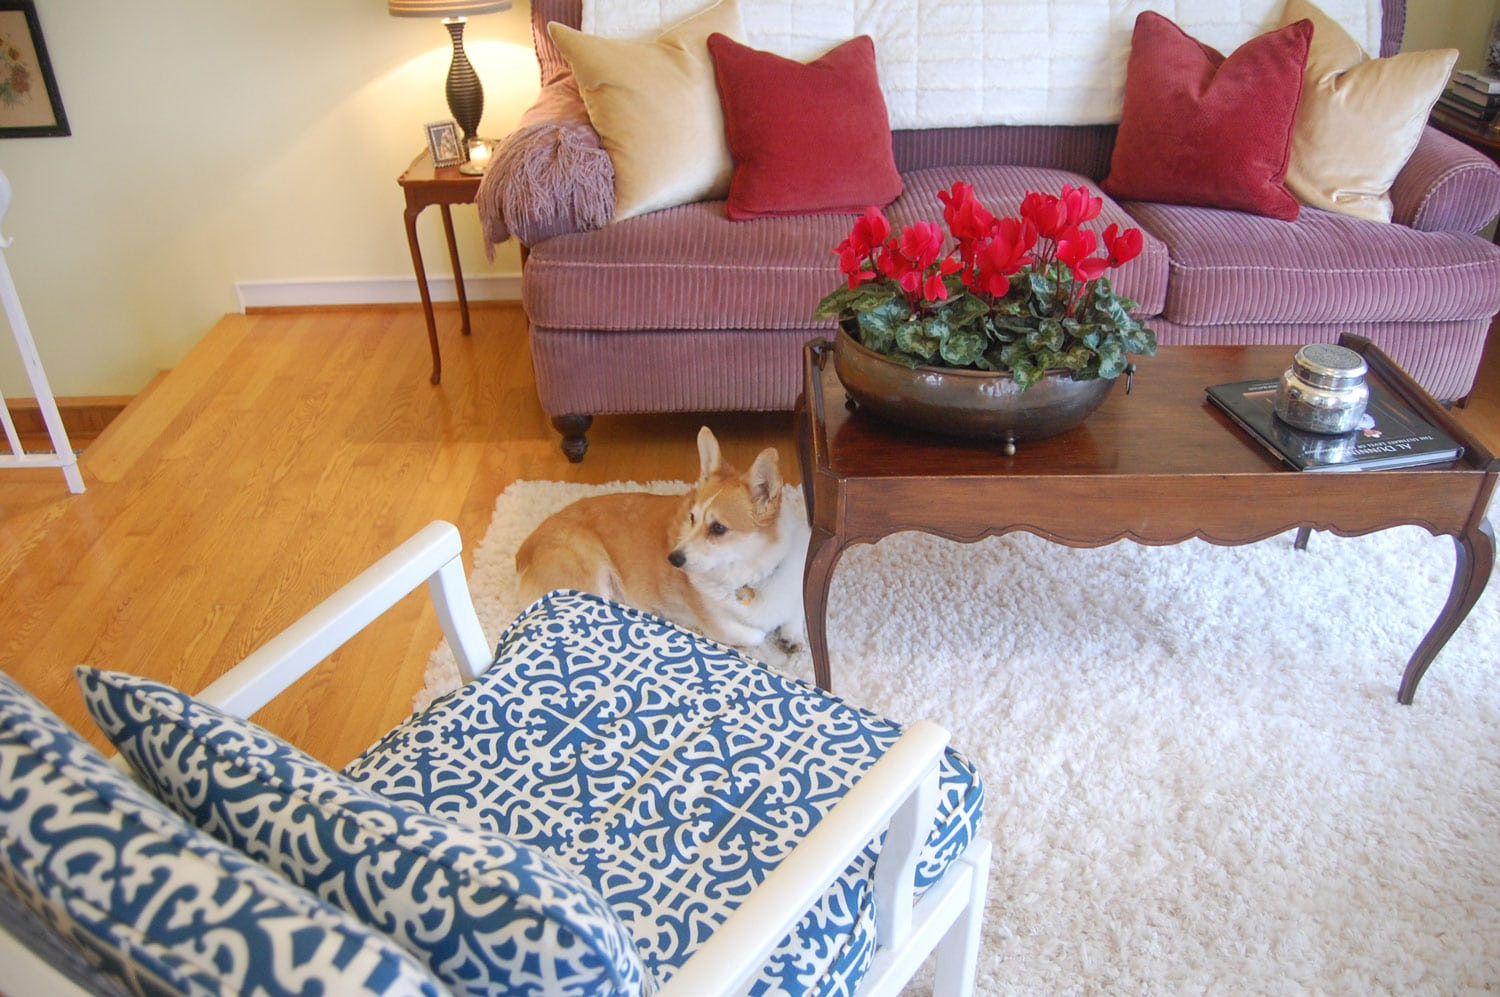 Corgi in Living Room with Holiday Decorations